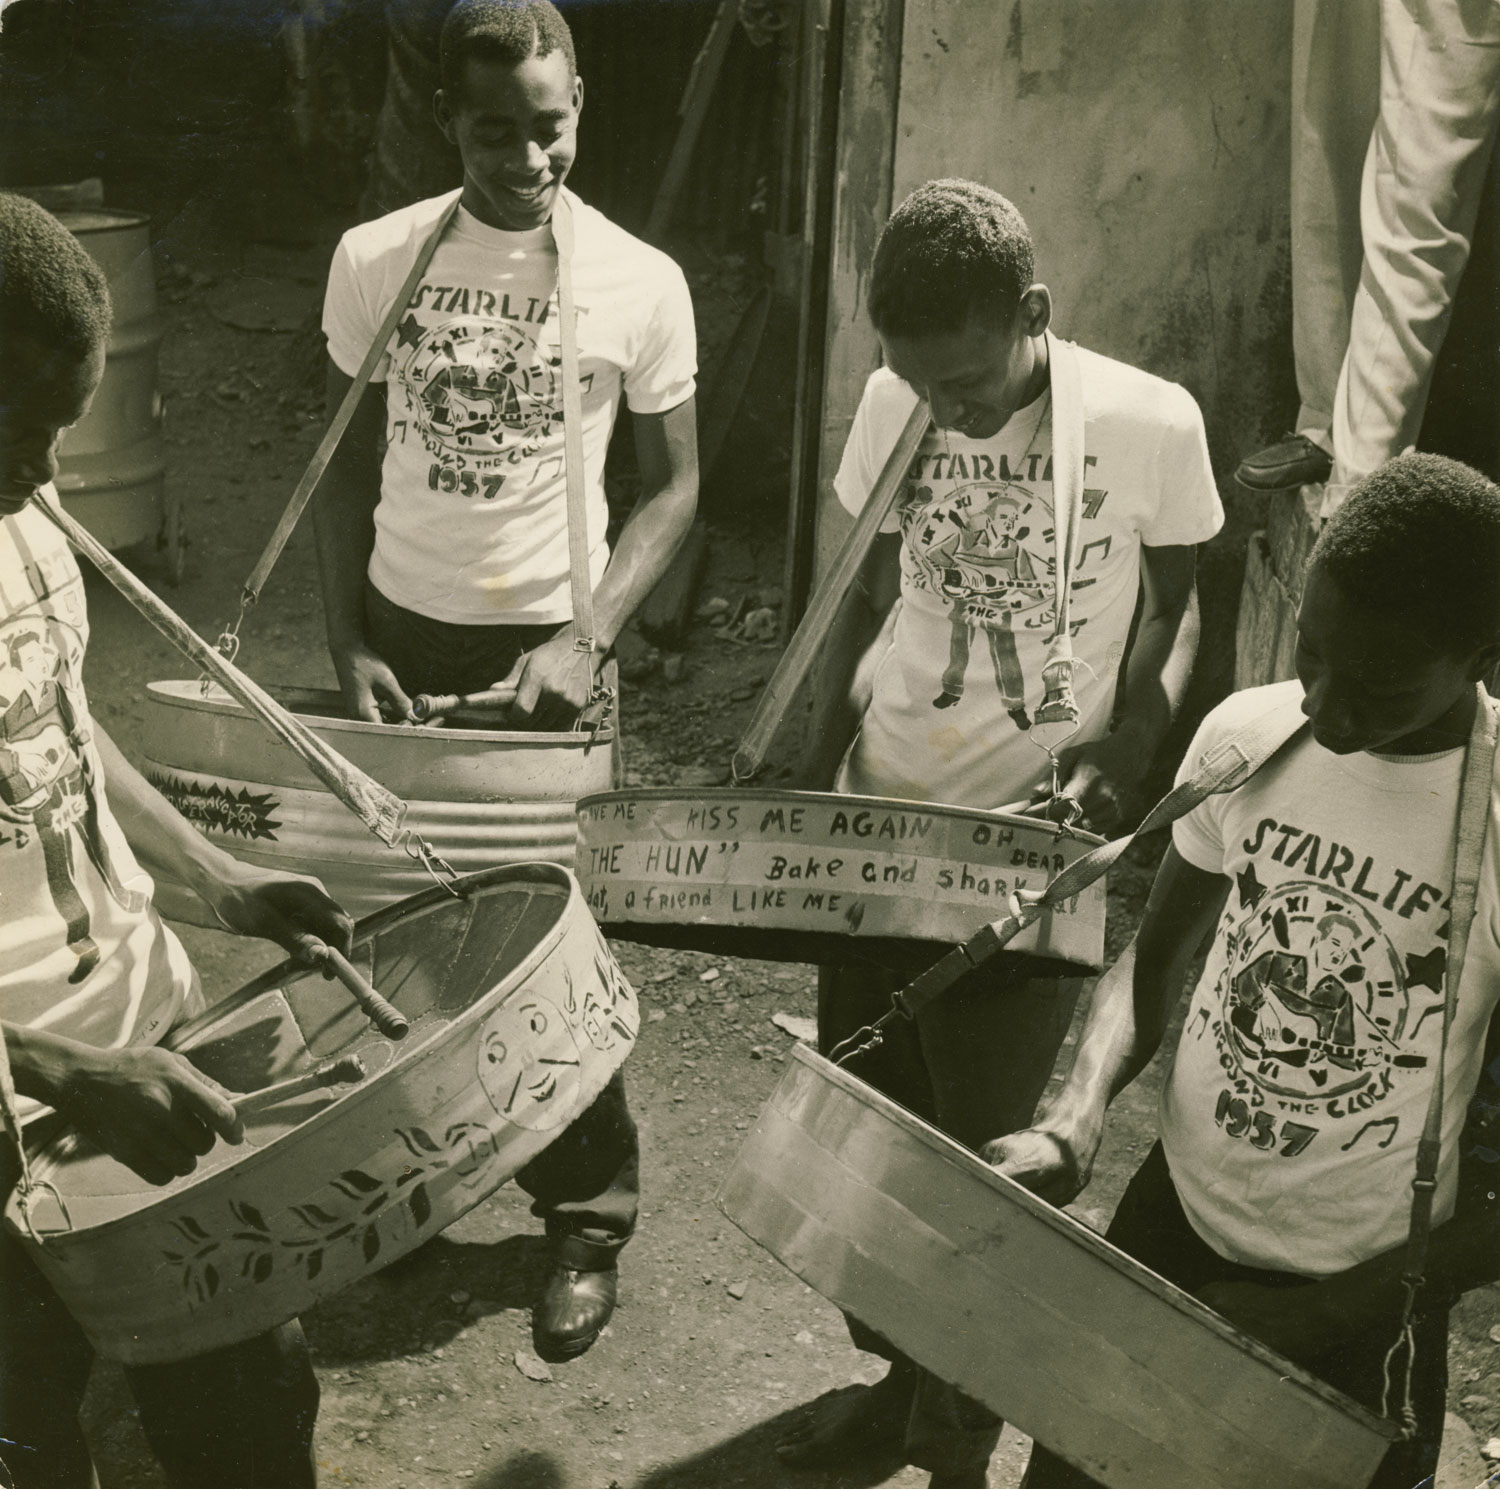 Starlift Steel Orchestra. Photograph courtesy Percy Pitts